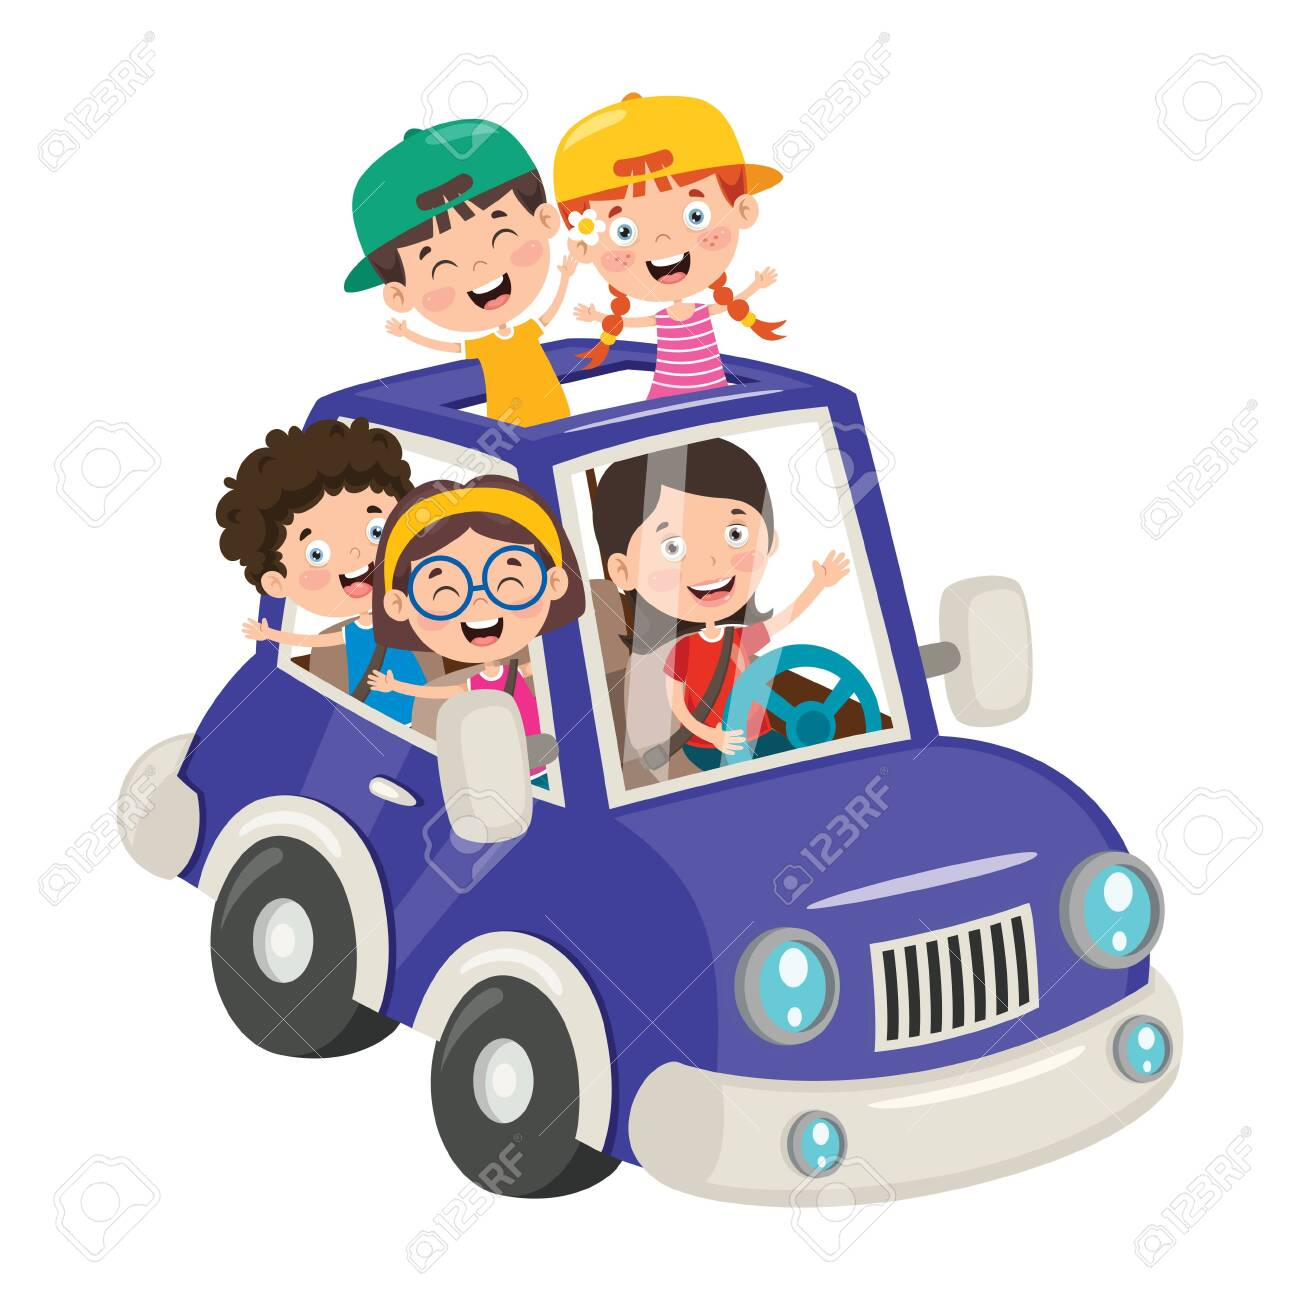 Cartoon Characters Travelling With Vehicle - 147108500